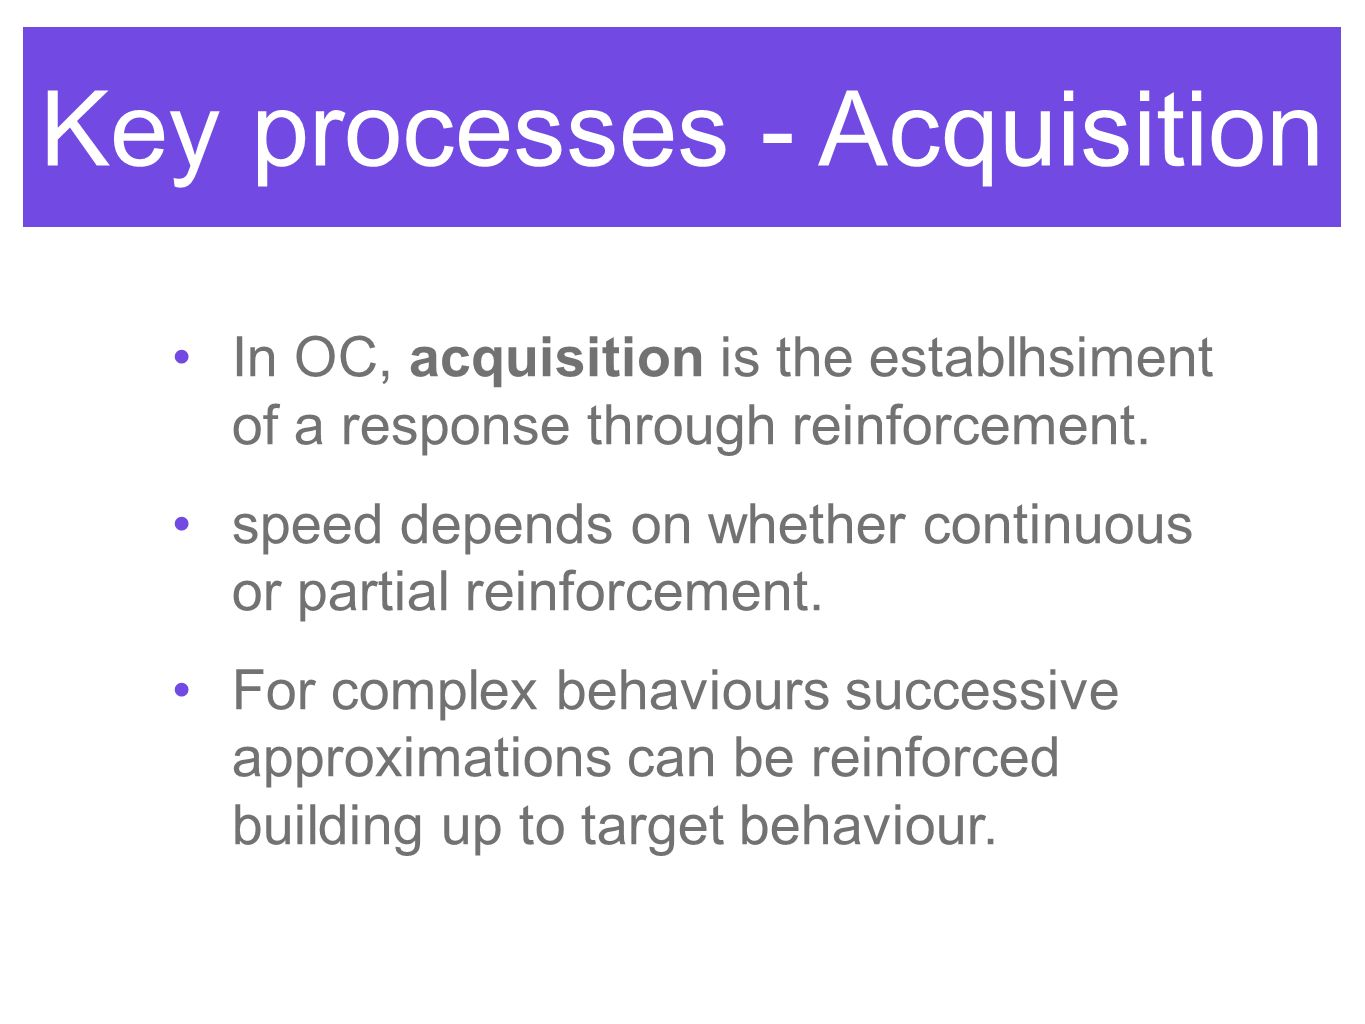 Key processes - Acquisition In OC, acquisition is the establhsiment of a response through reinforcement.